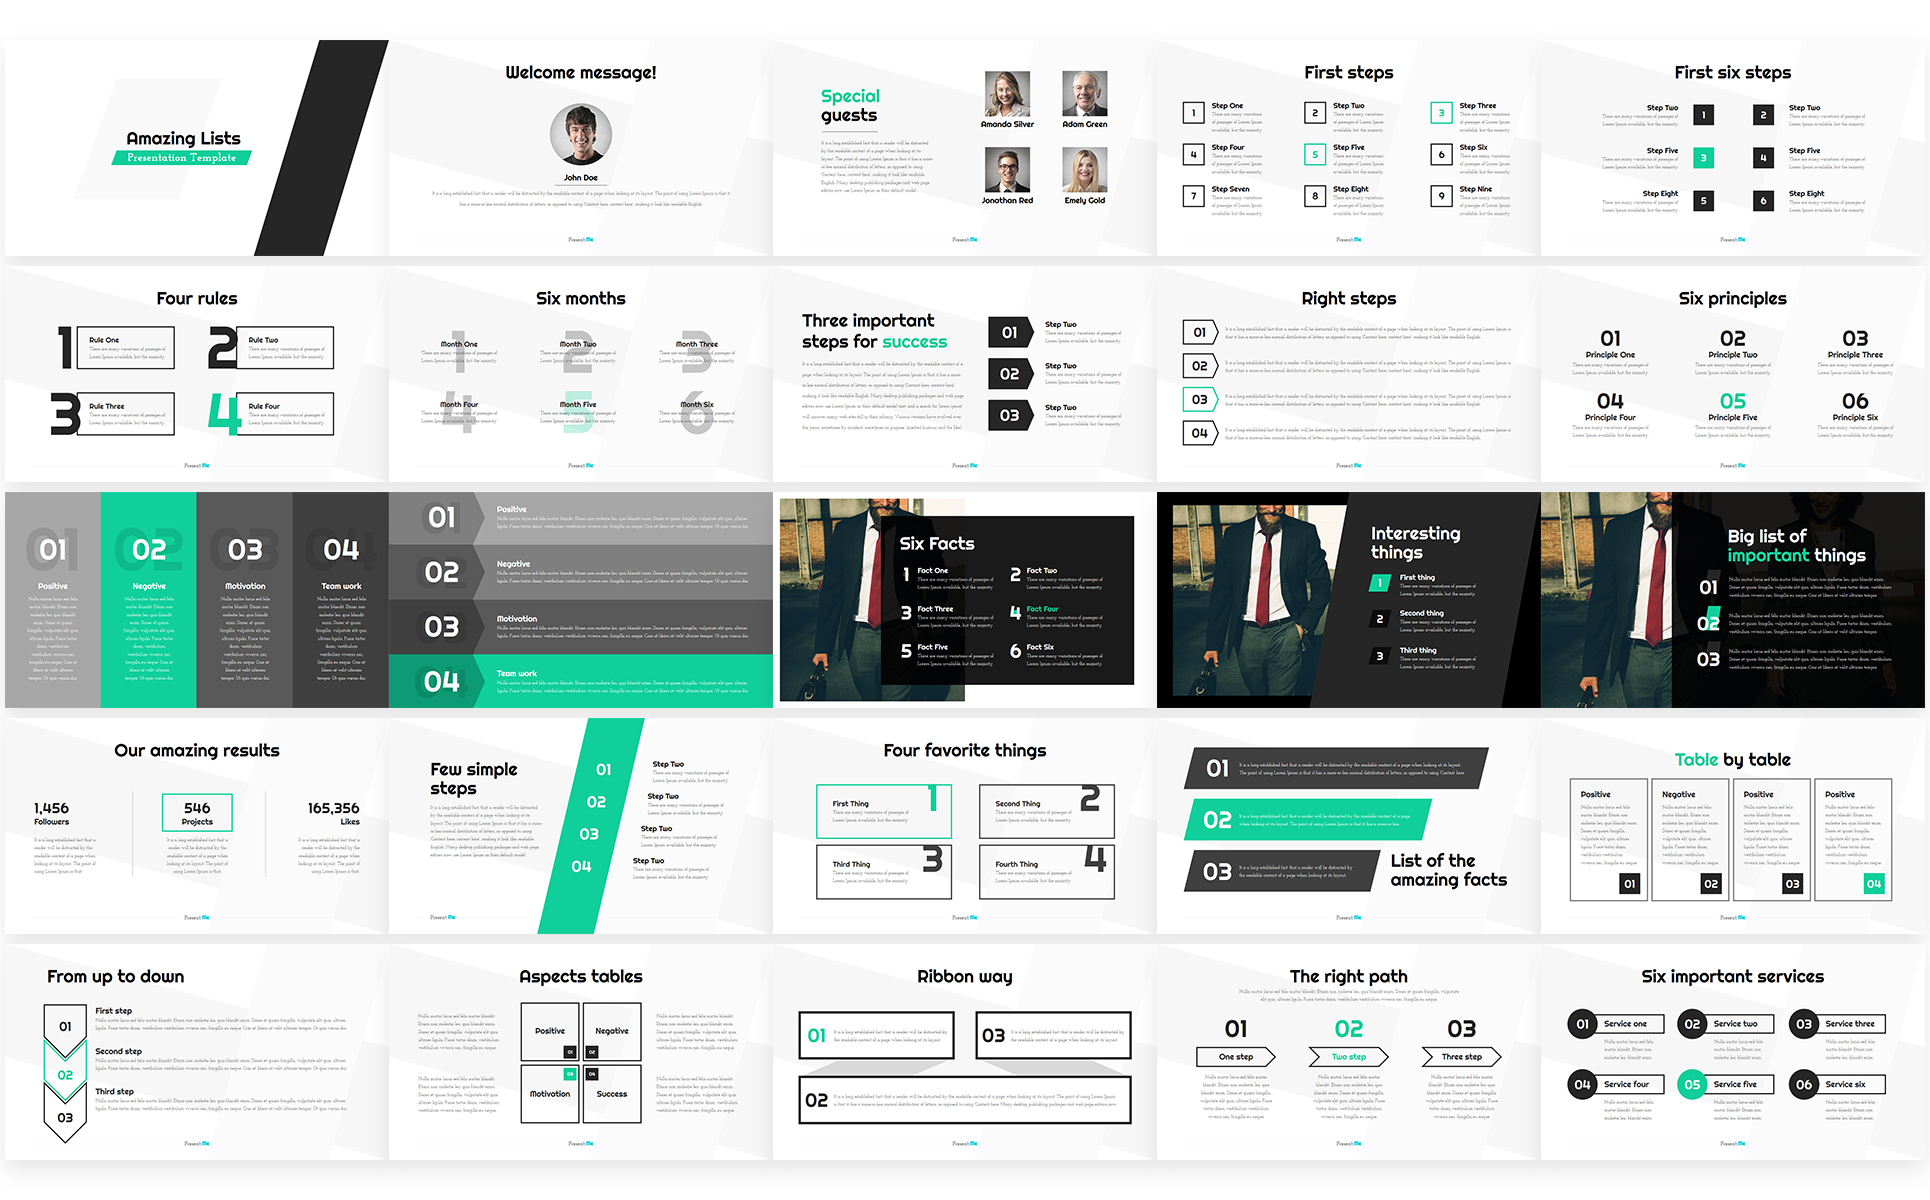 Amazing lists powerpoint template 65642 amazing lists powerpoint template big screenshot toneelgroepblik Image collections